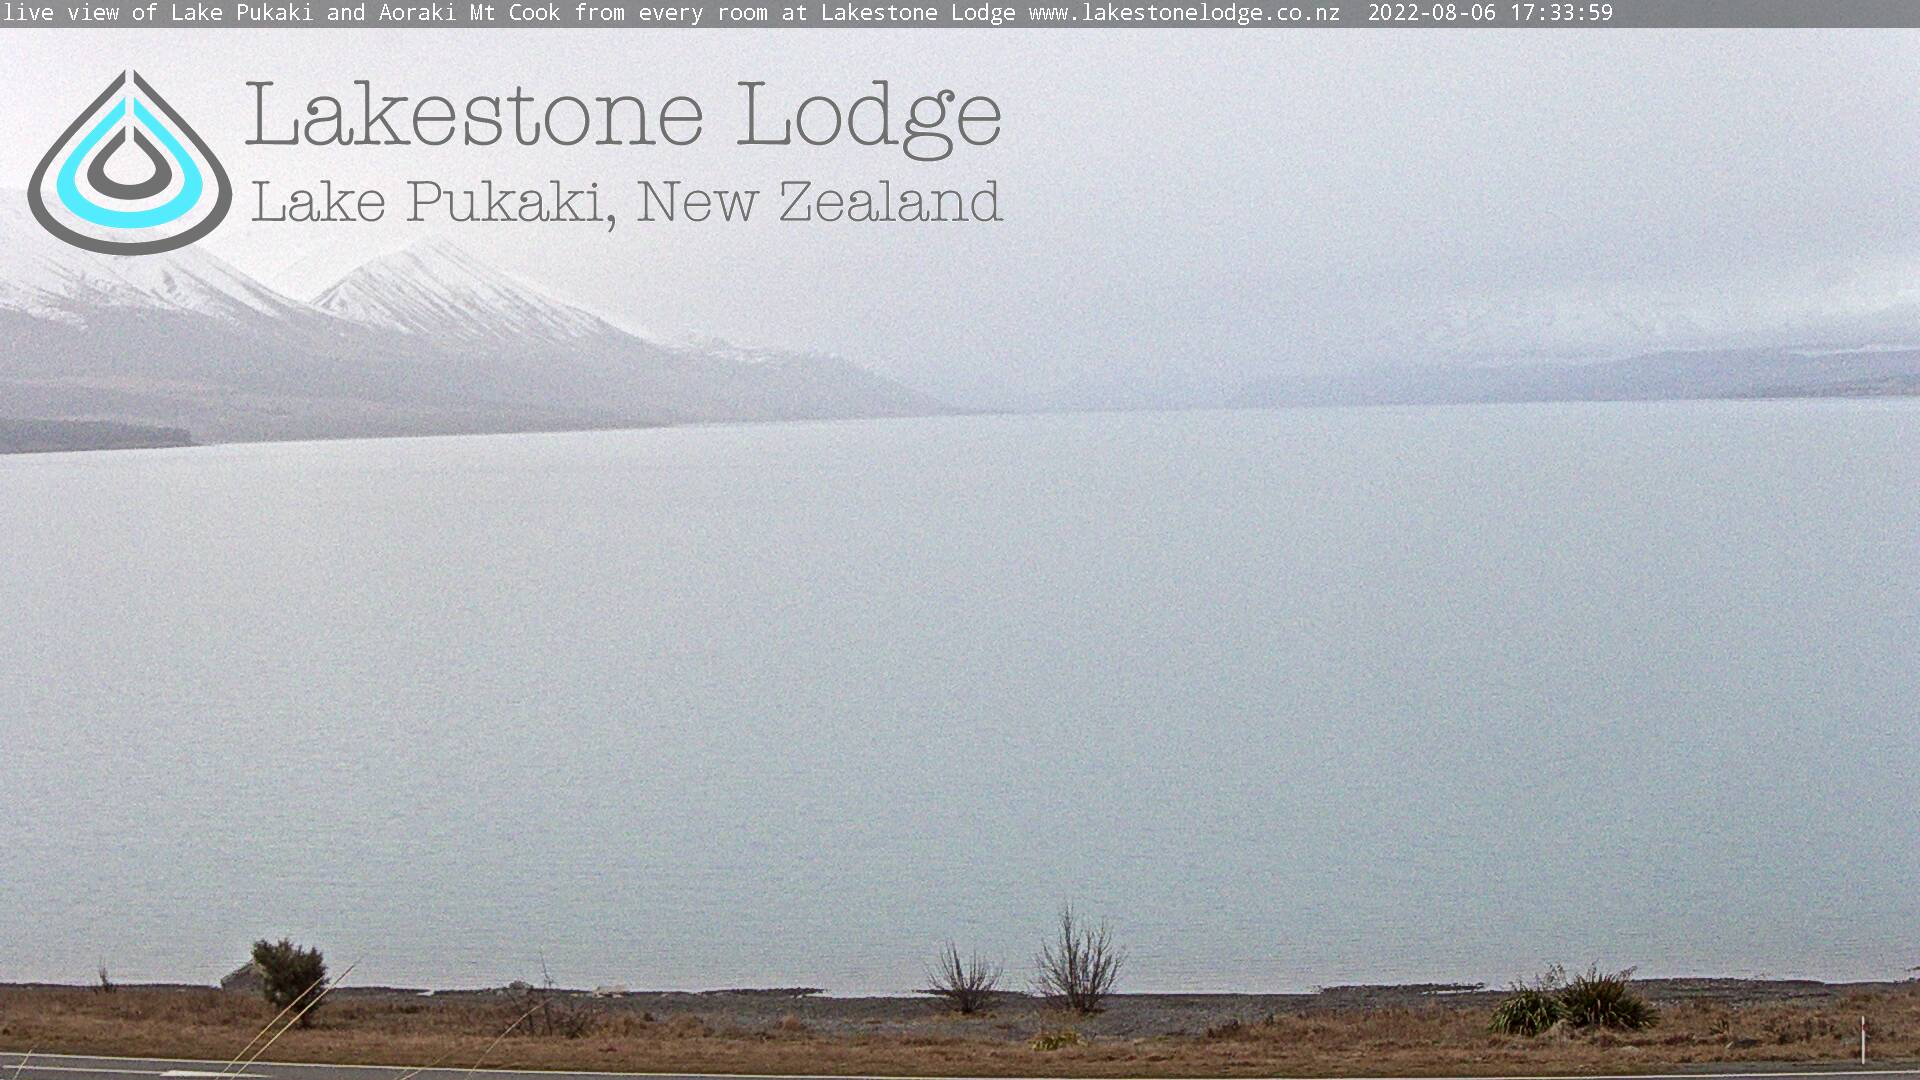 Live Webcam Lake Pukaki, Mt Cook Weather Lakestone Lodge